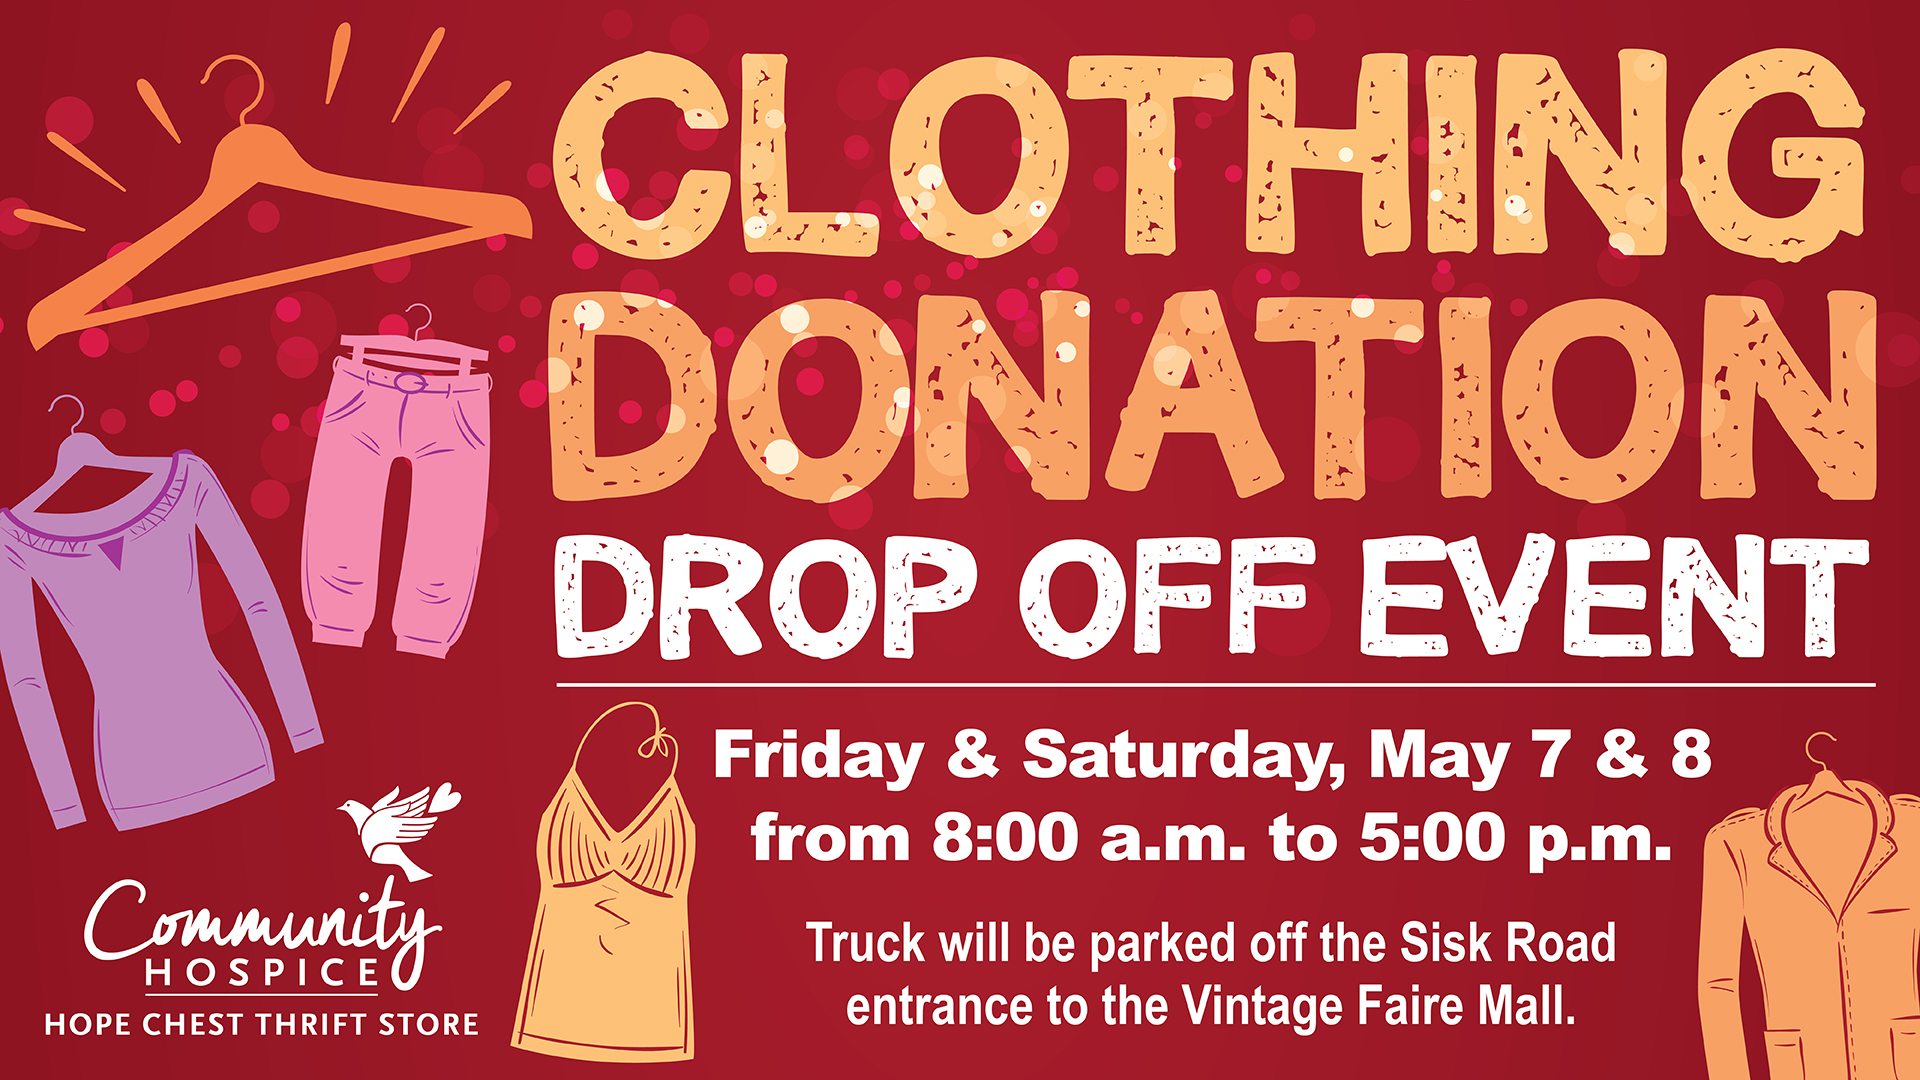 graphic for clothing drop off